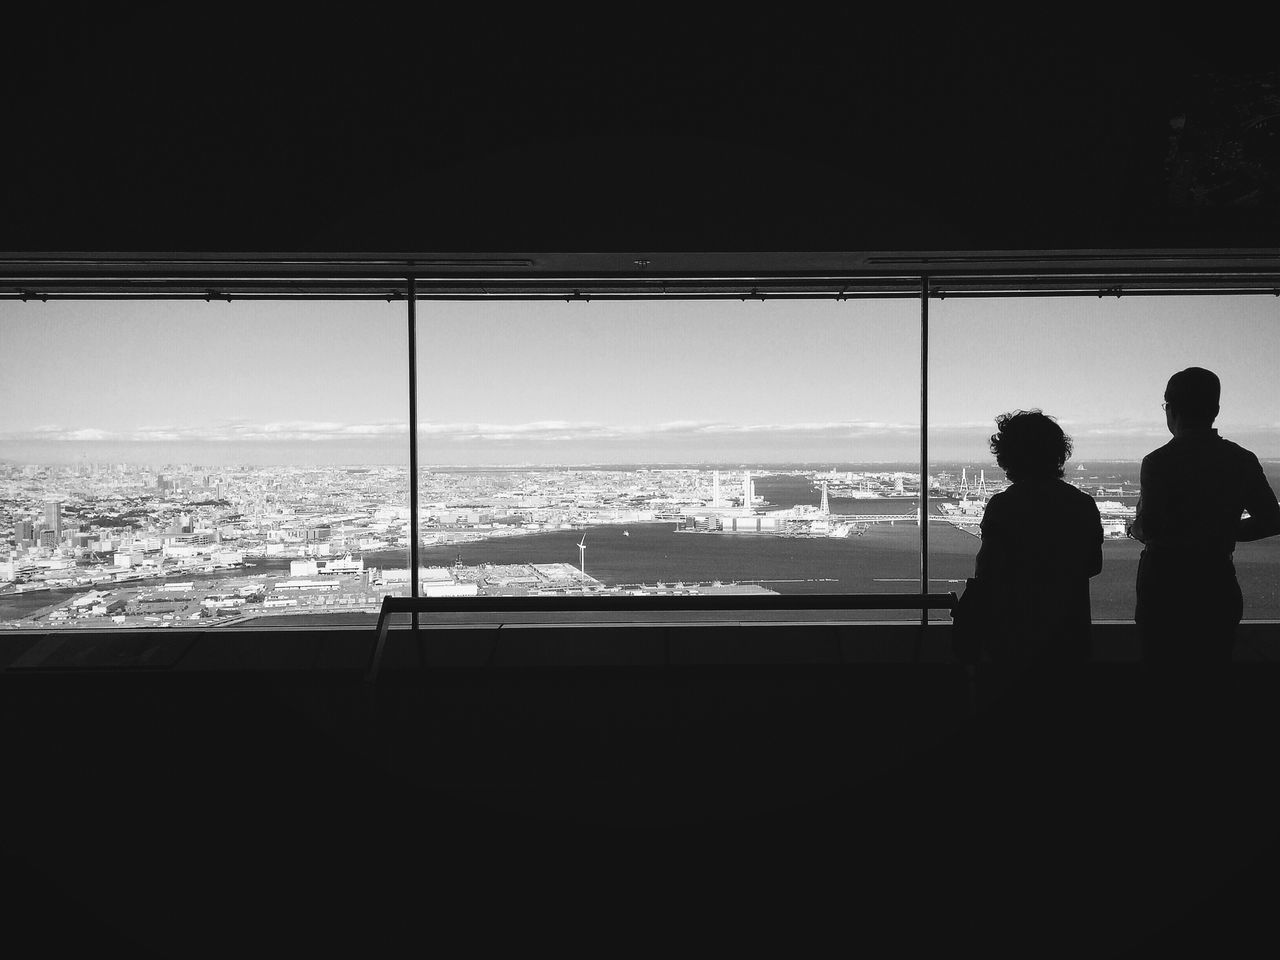 Two People Watching Cityscape Form High Floor Window